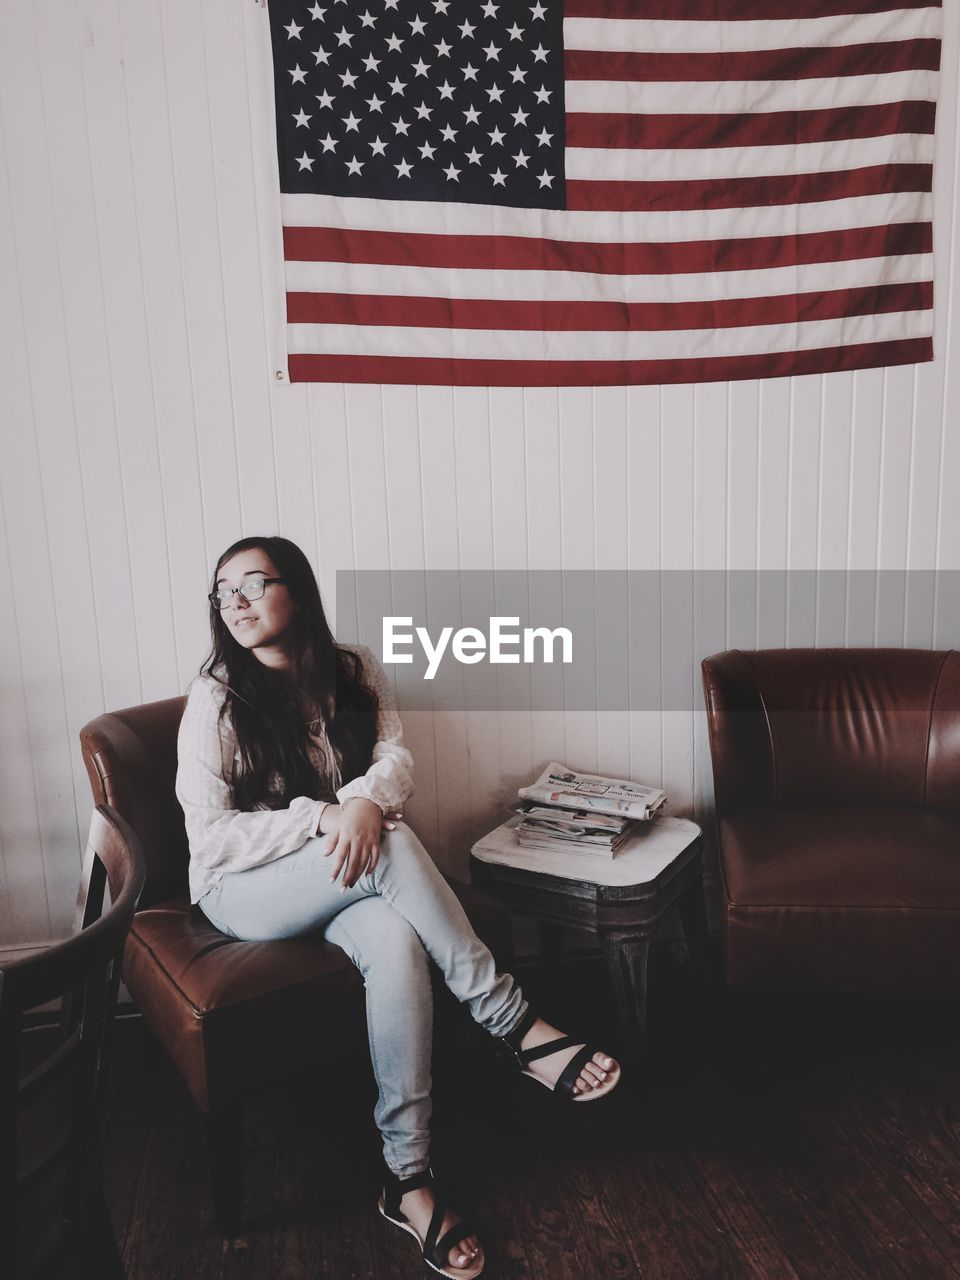 Full Length Of Woman Sitting On Chair Against American Flag On Wall At Home